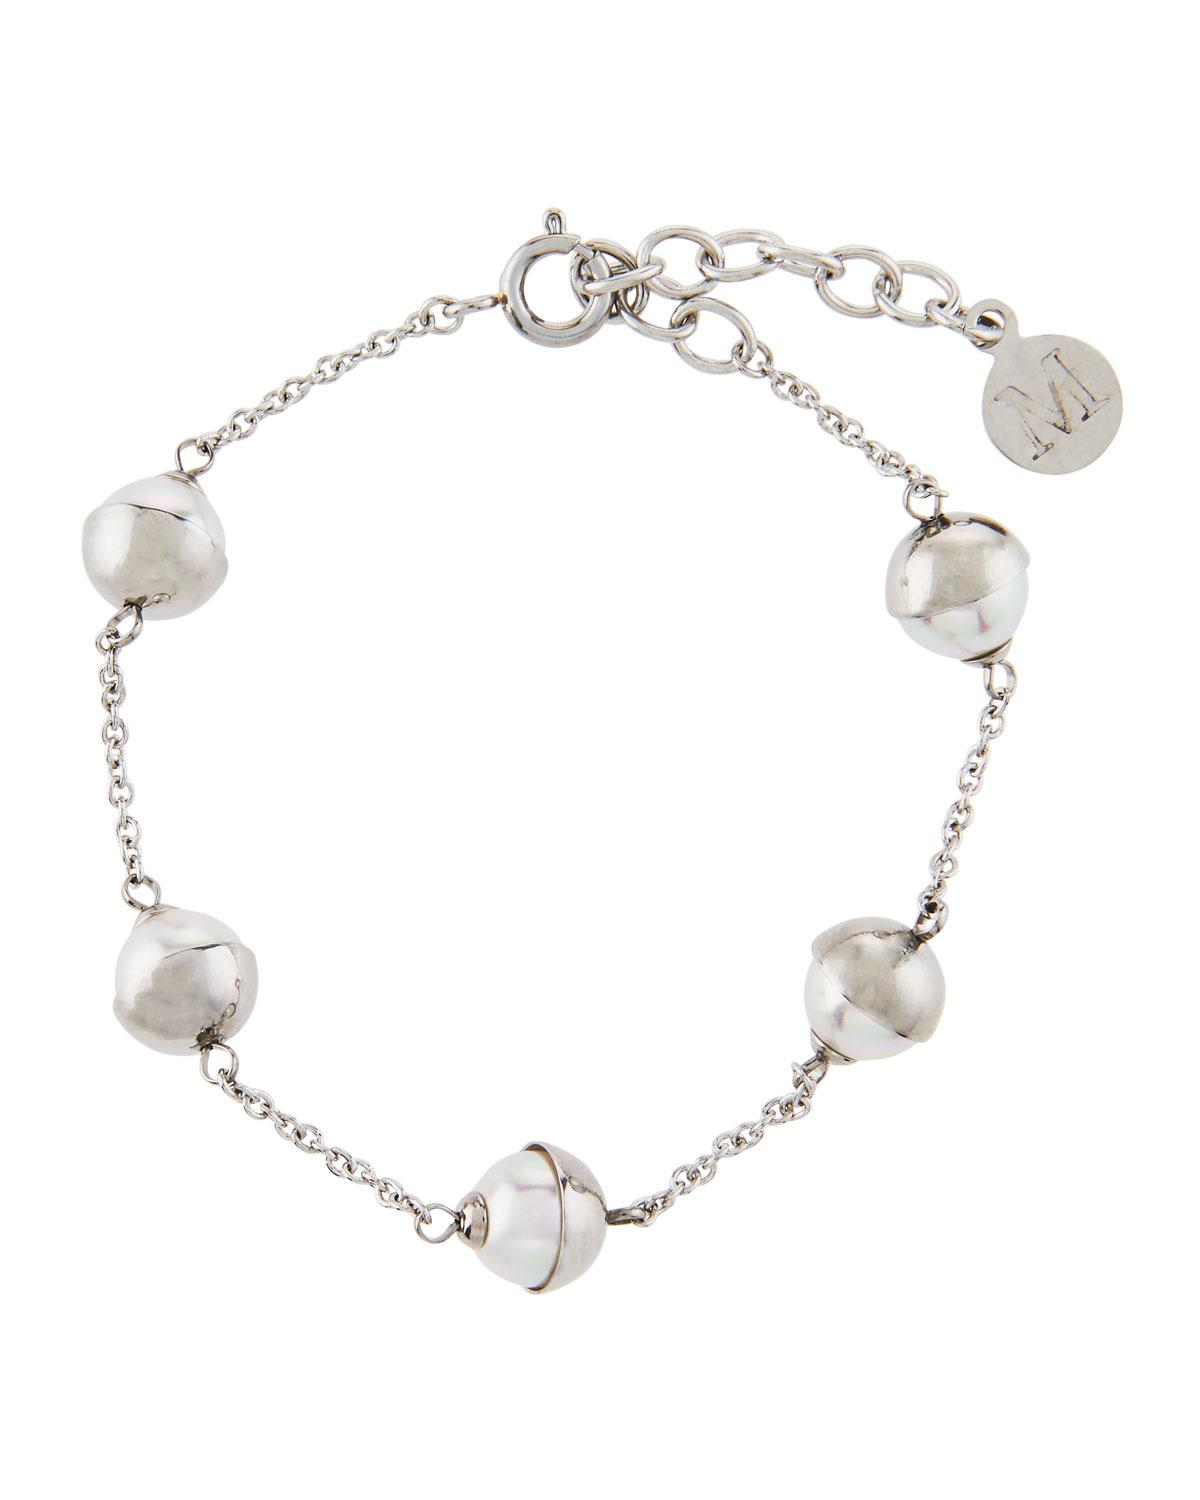 Majorica Beaded 5mm Simulated Pearl & Chain Bracelet, White